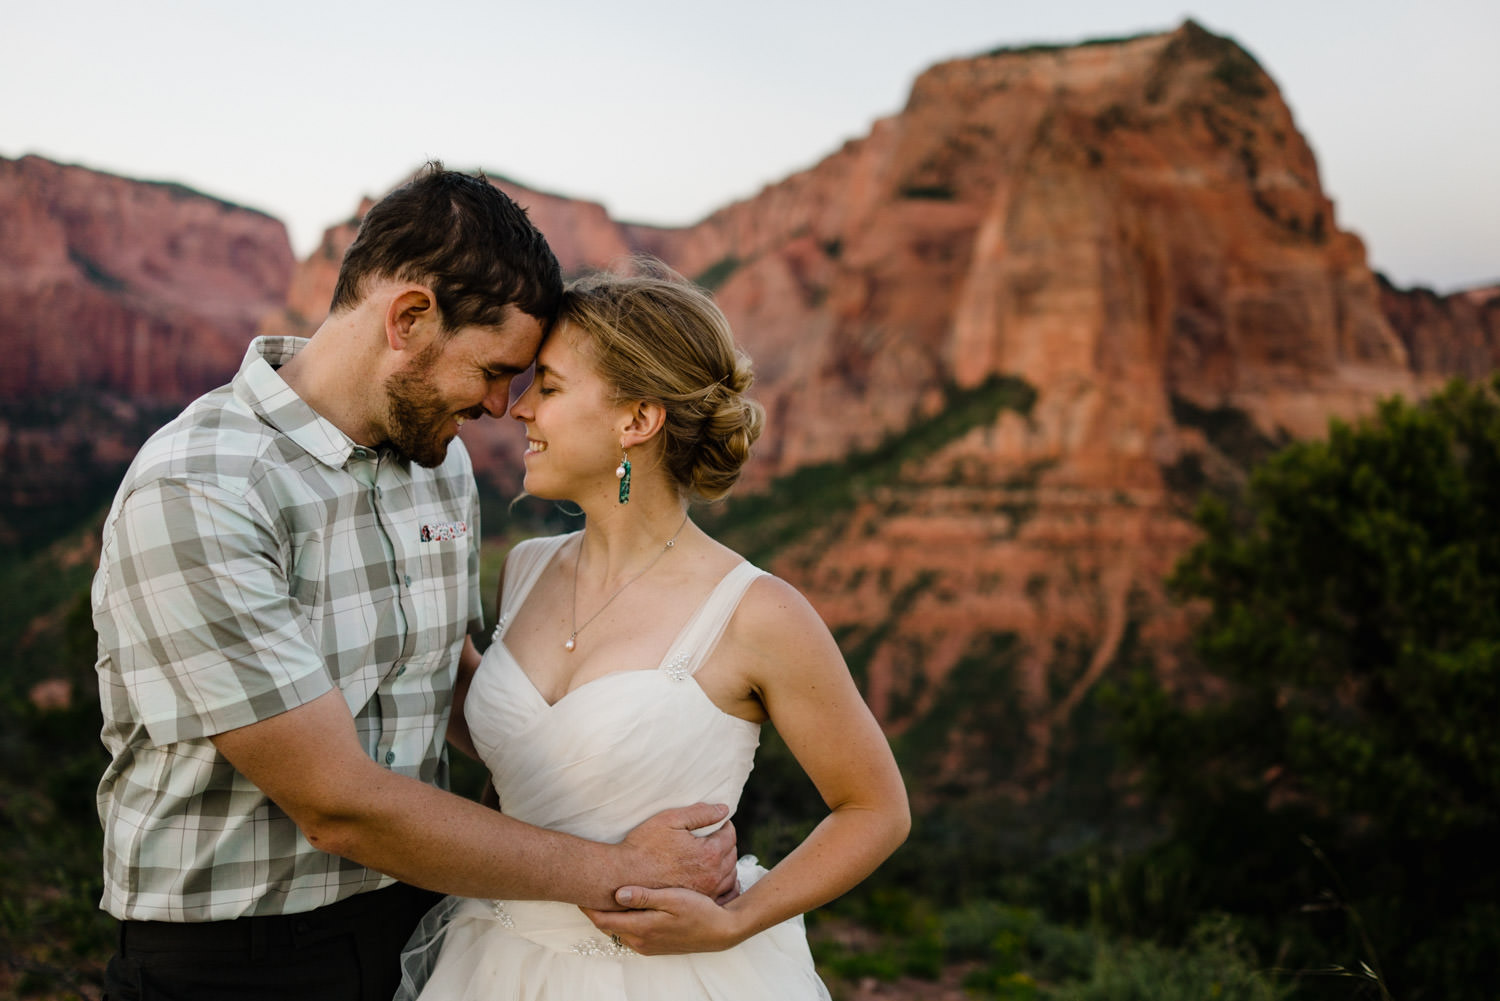 Wedding in Zion National Park bride and groom smiling at each other photo